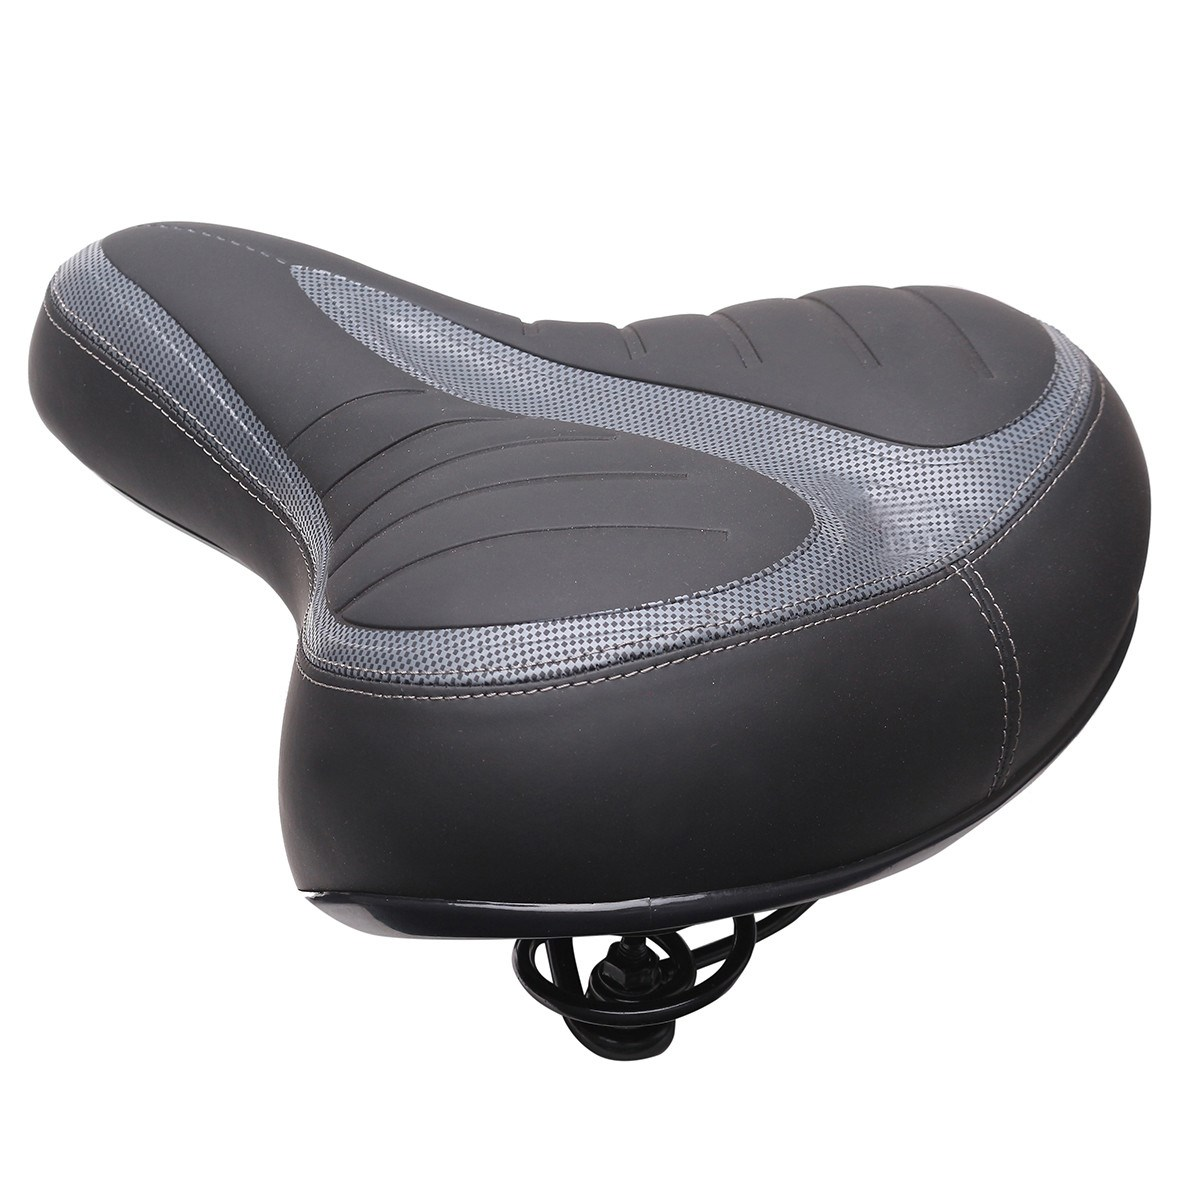 Bicycle Saddle Bicycle Parts wide road Cycling Seat Mat Comfortable Cushion Soft Seat Cover for <font><b>Bike</b></font> MTB <font><b>Bike</b></font> Bicycle parts